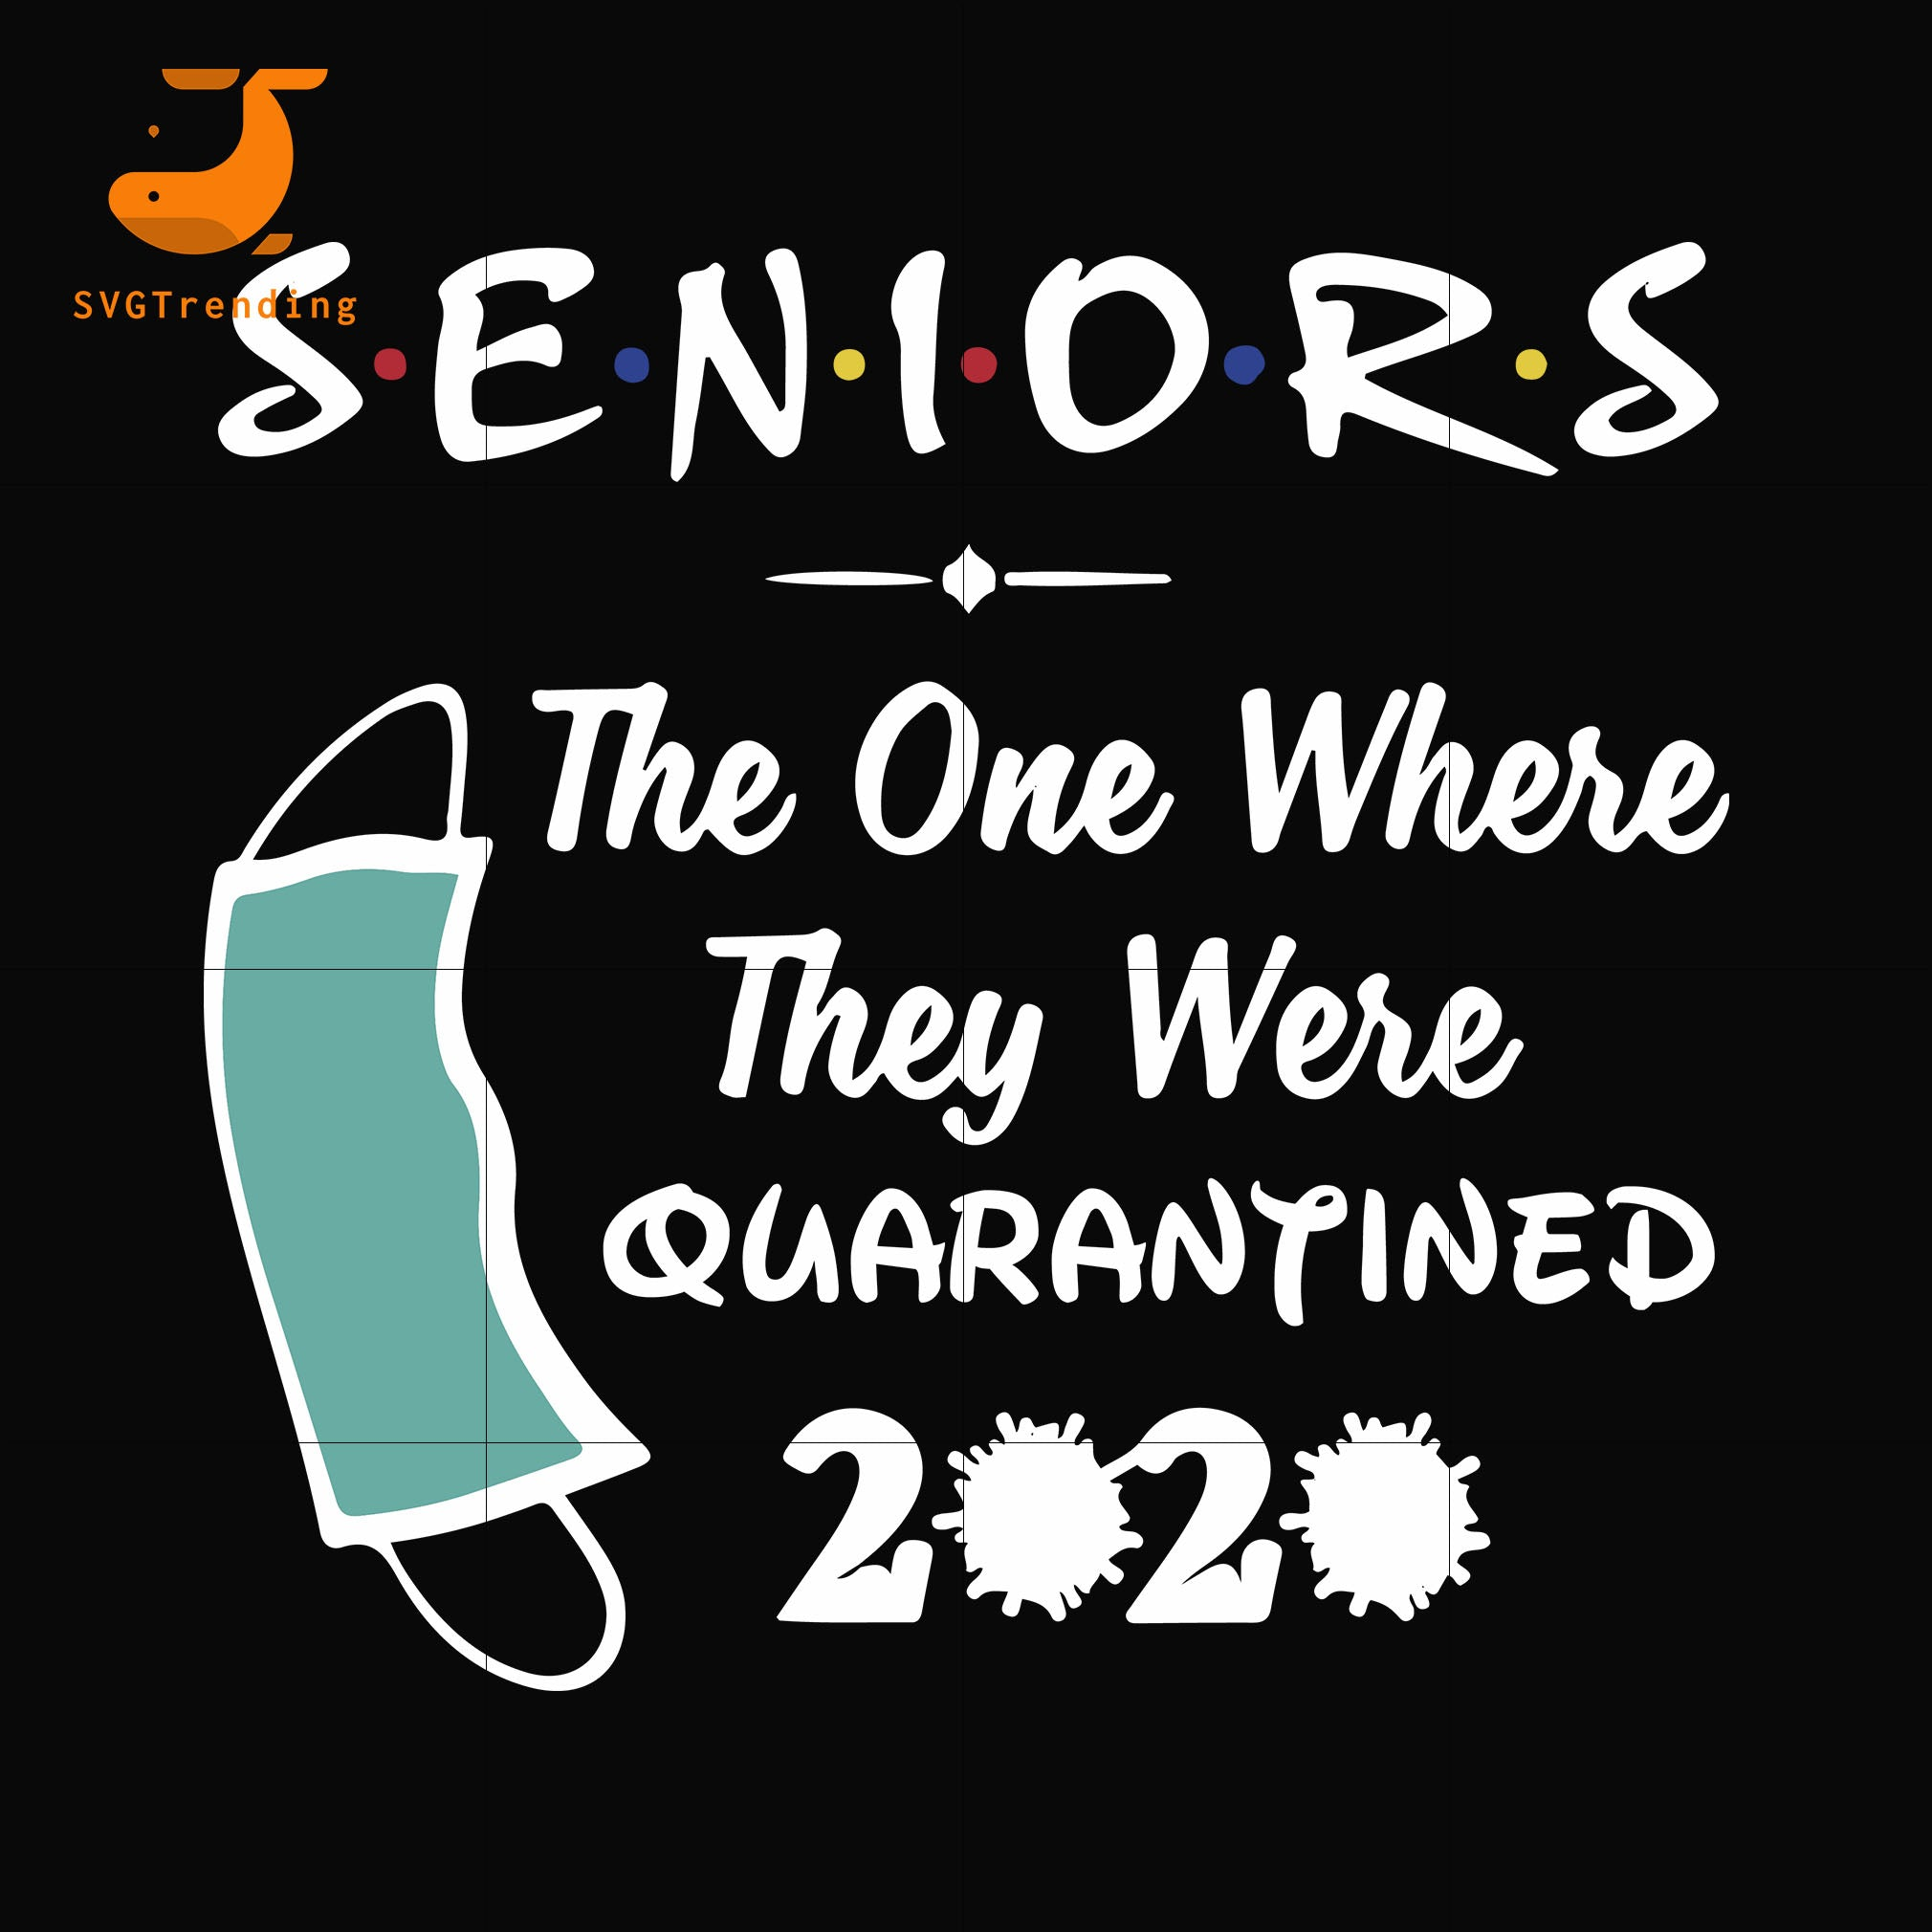 Seniors the one where they were quarantined svg, dxf, eps, png digital file